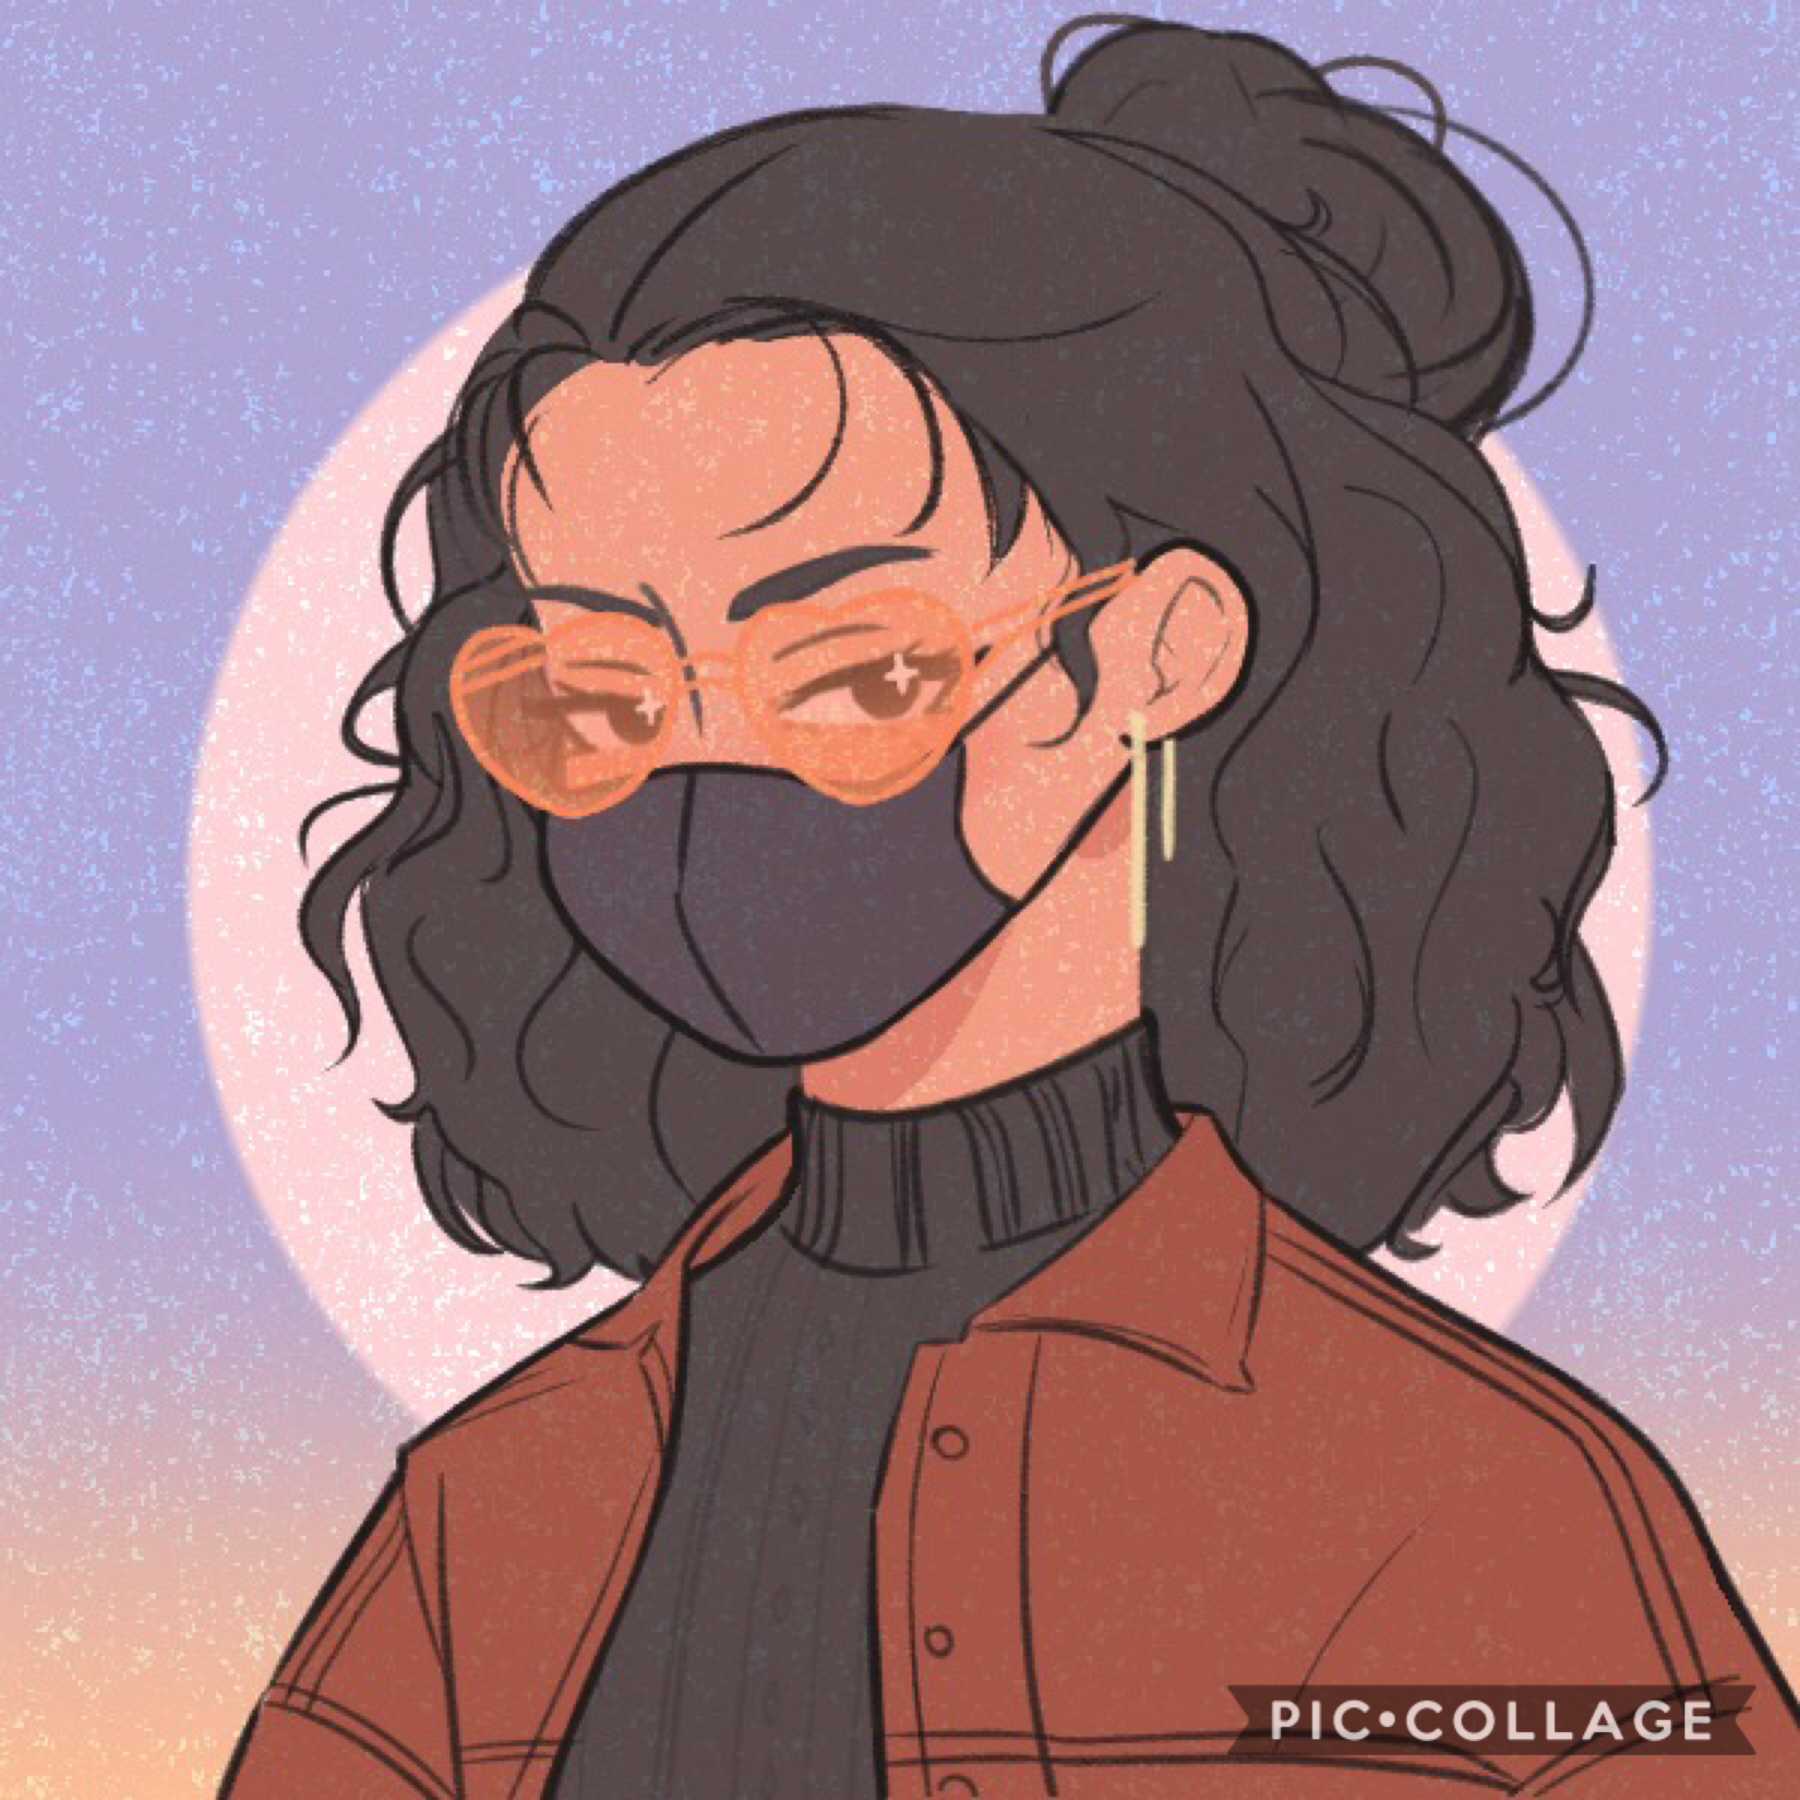 new icon/life update:  i got a 20 on a math quiz lol. I'm way over my head this year with honors classes and ap classes. Especially with covid, everything is so much faster and i'm already taking really fast paced classes. i'm already incredibly burnt out